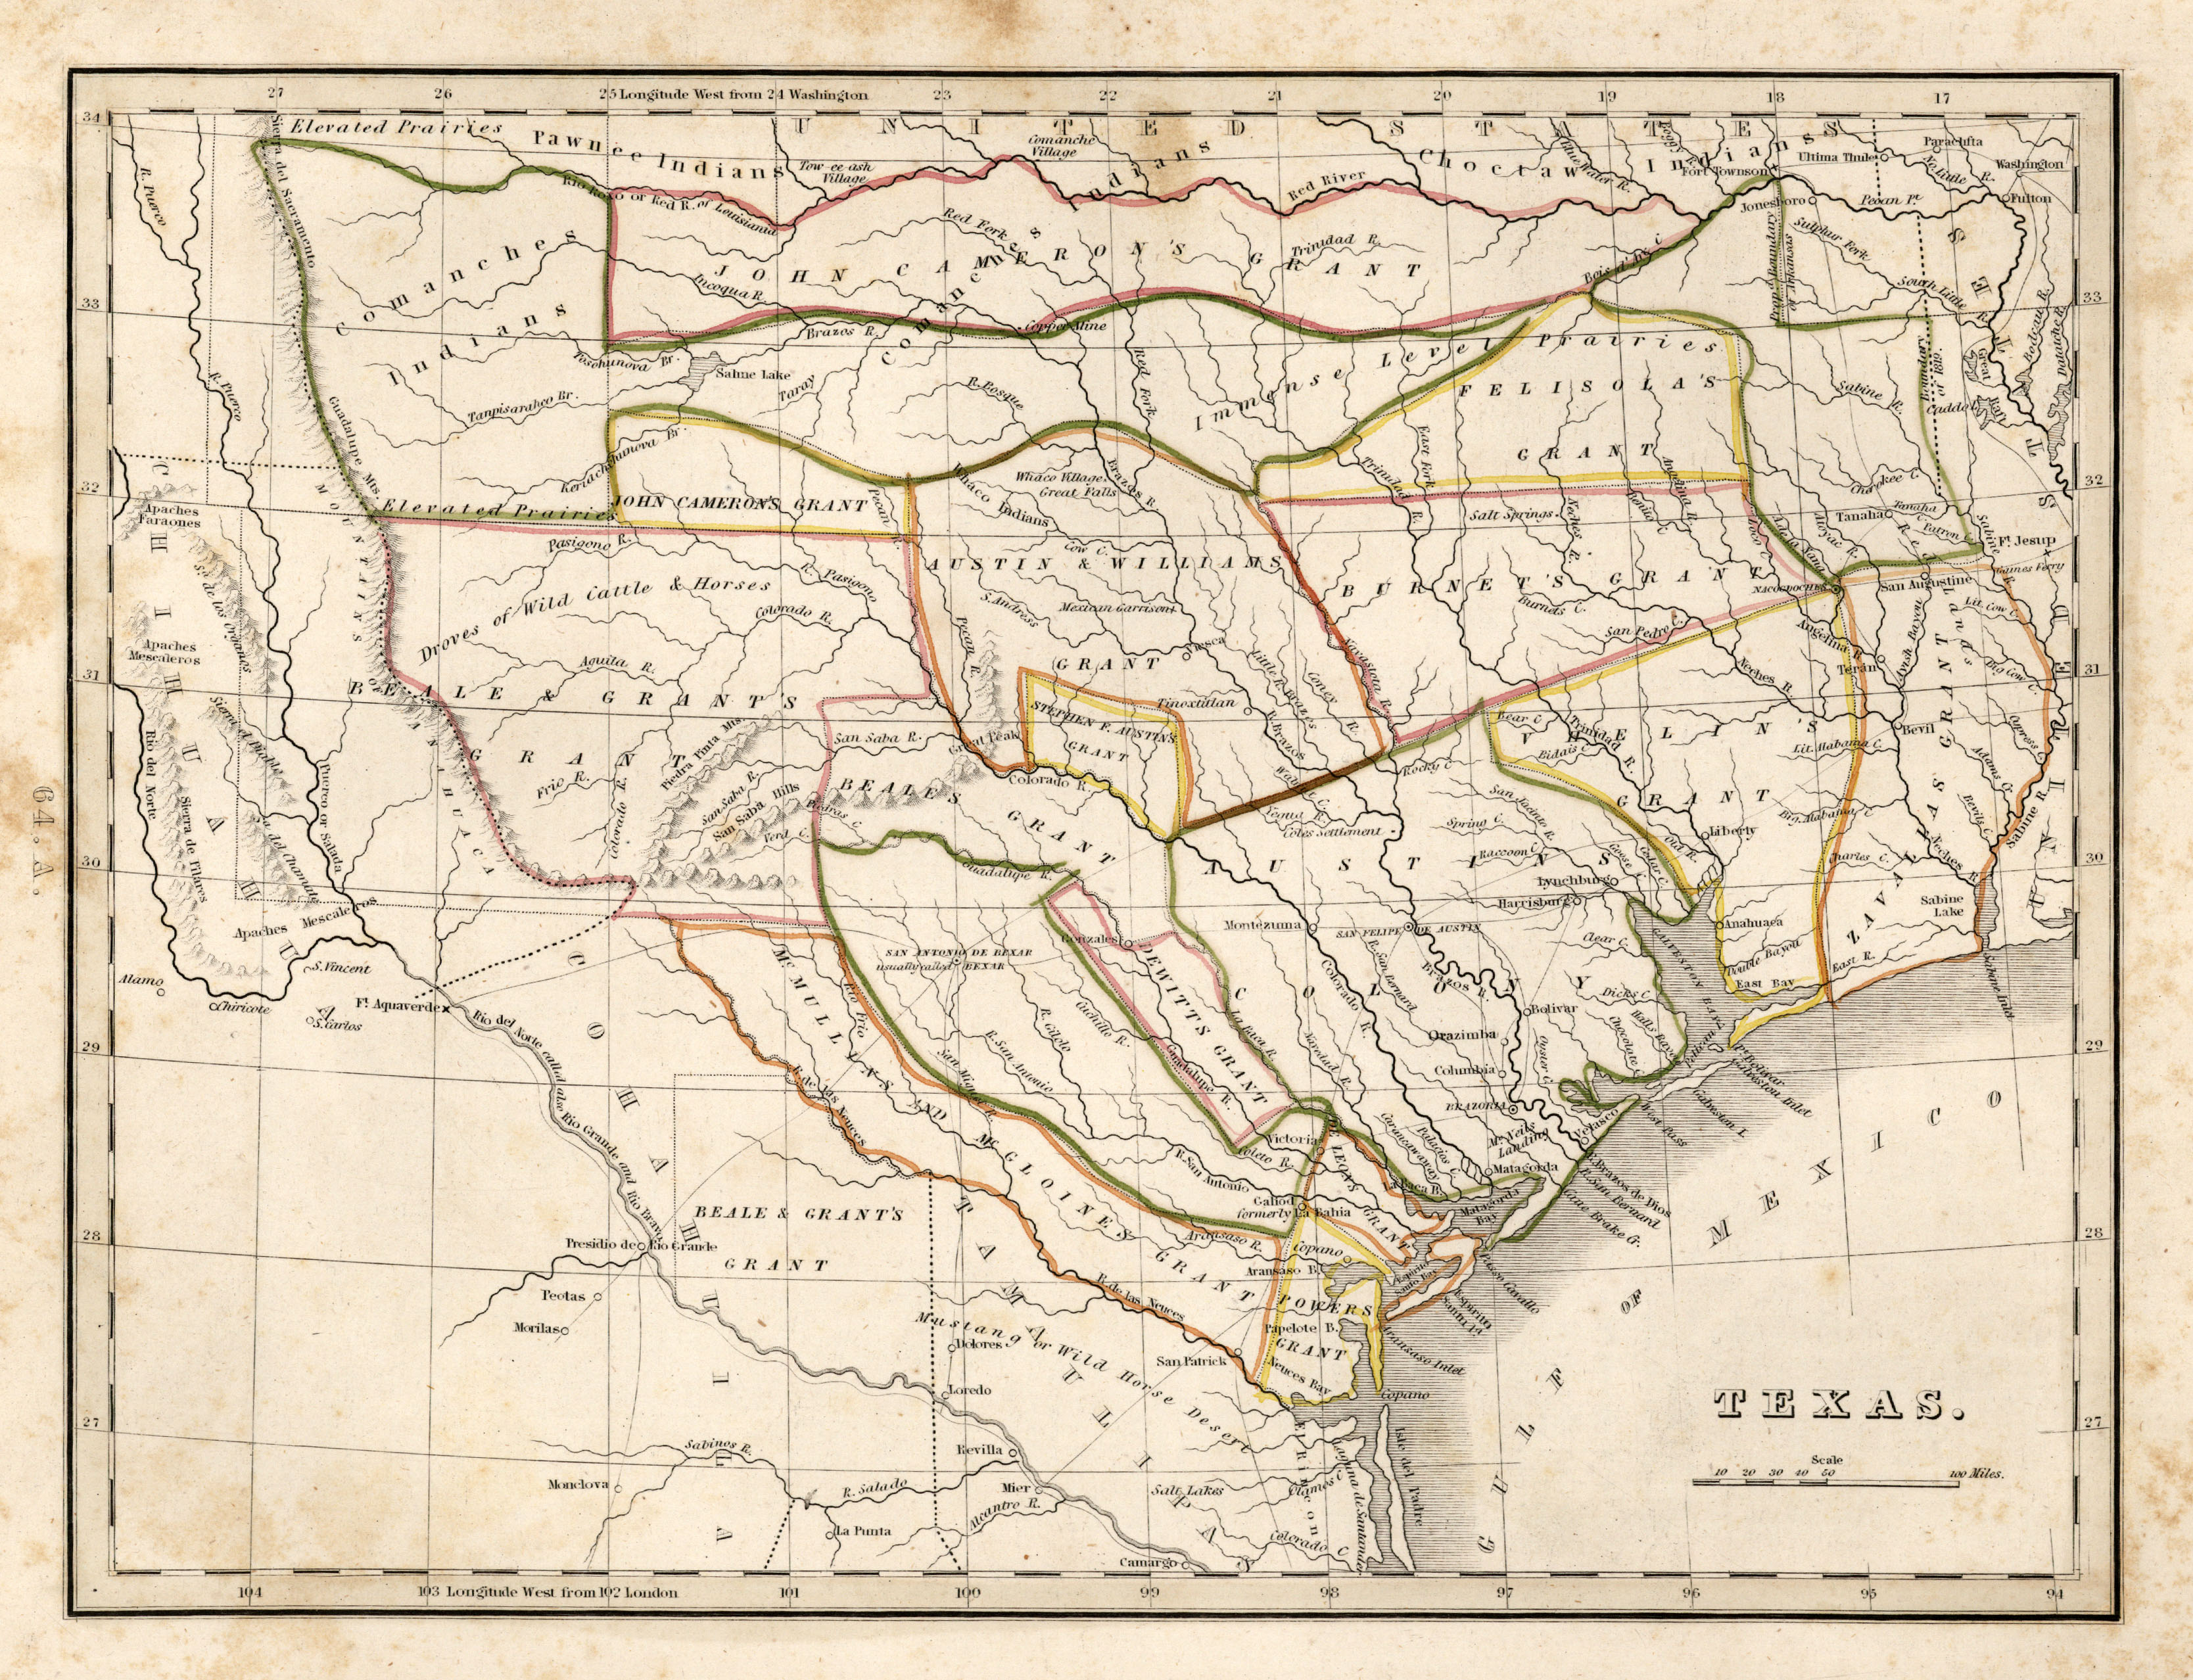 Texas Historical Maps - Perry-Castañeda Map Collection - Ut Library - Top Spot Maps Texas